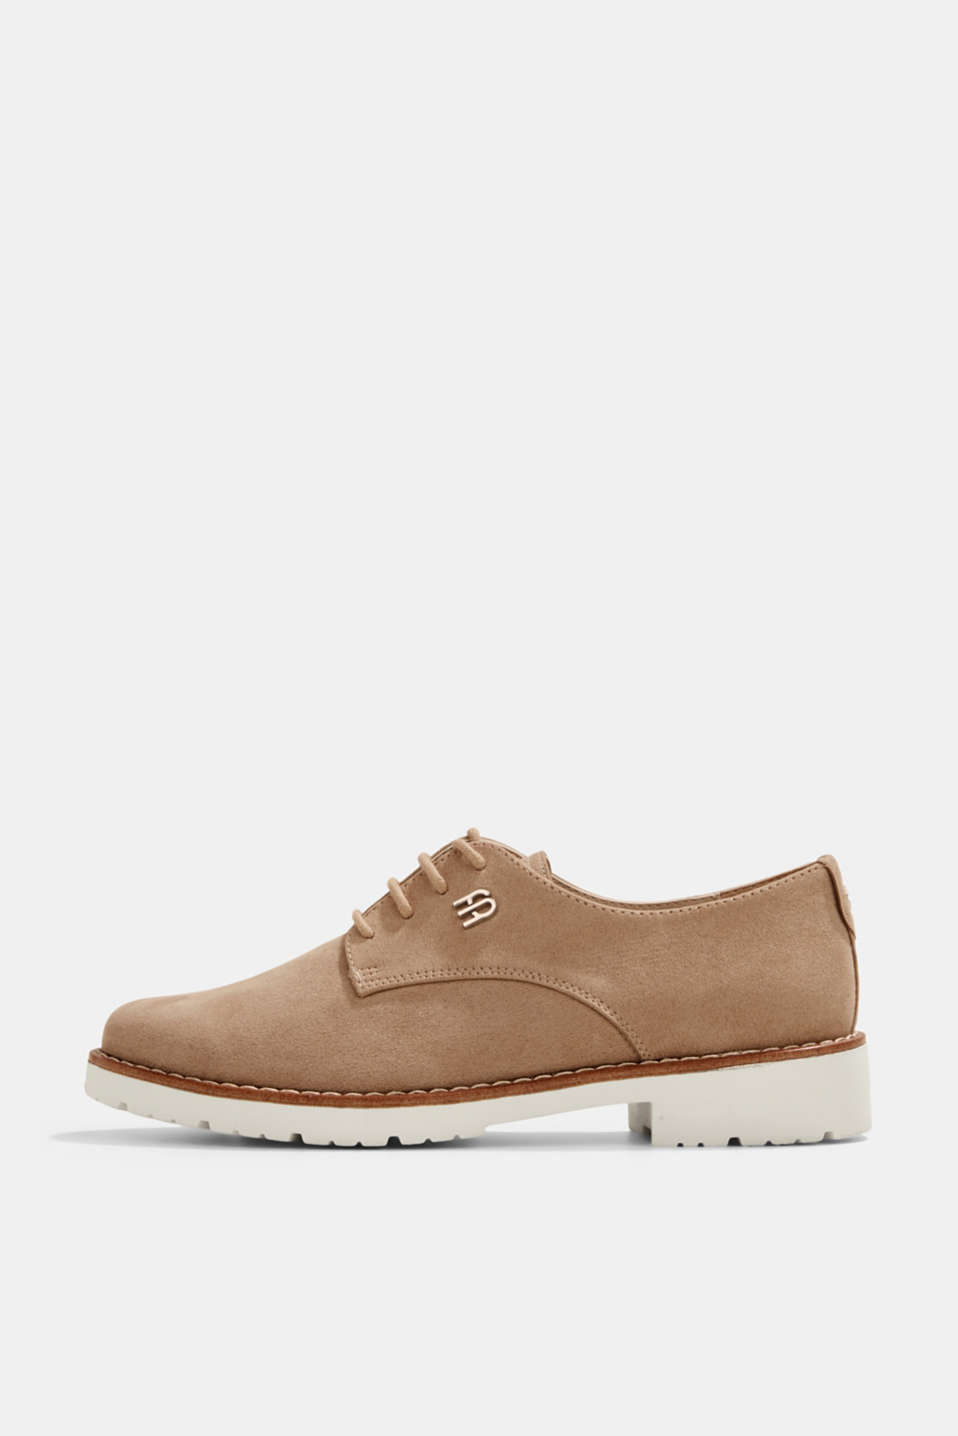 Esprit - Faux leather lace-up shoes